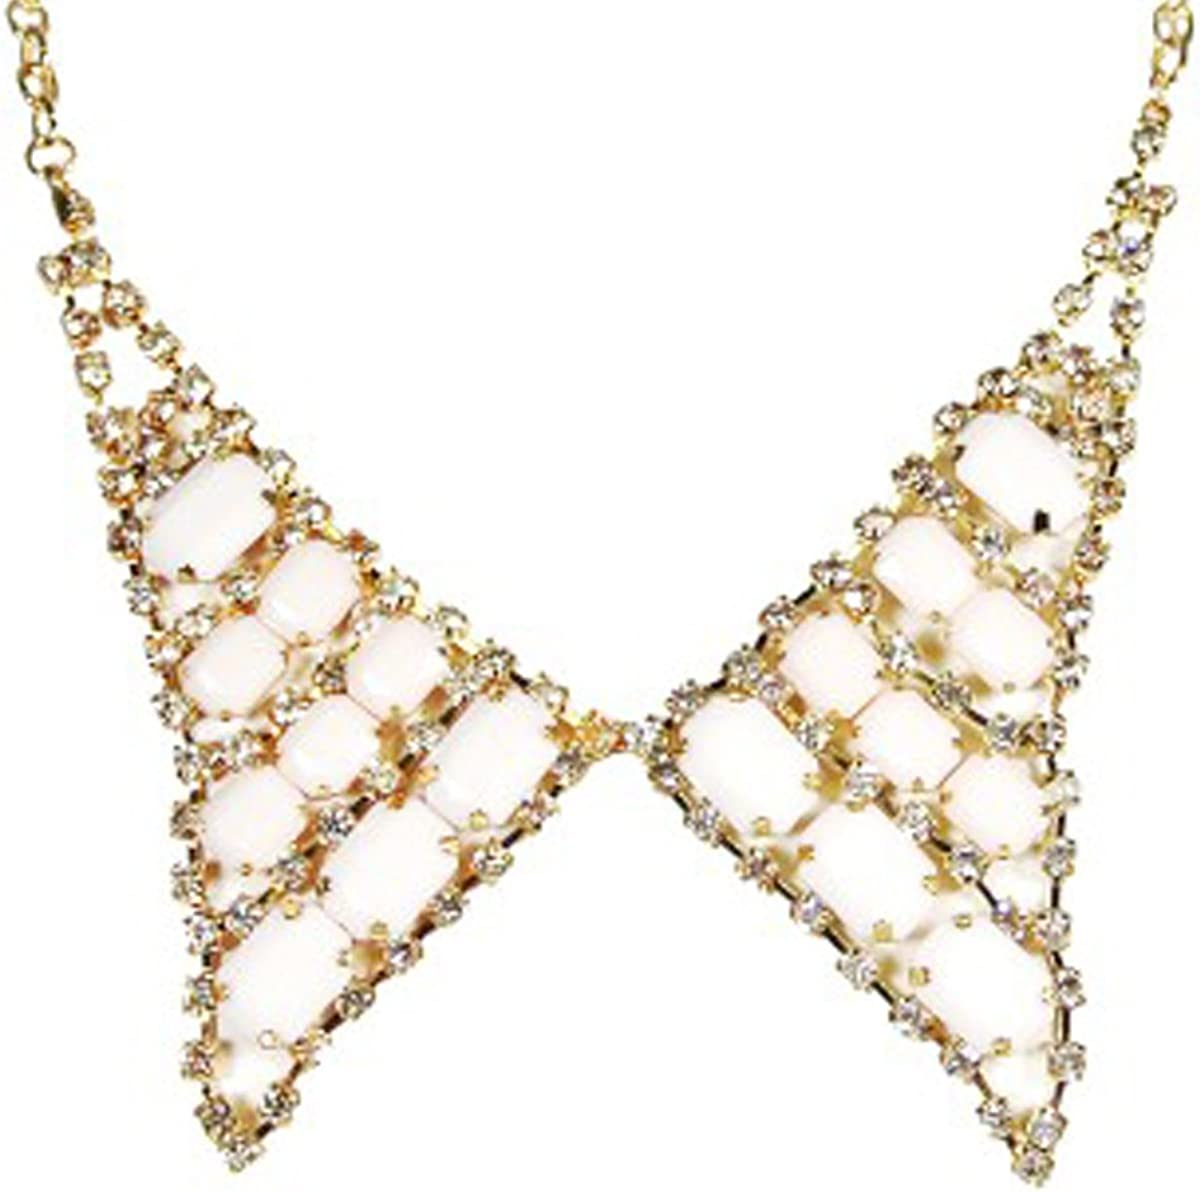 Wrapables Pointed Bow Tie Collar Necklace - Ivory